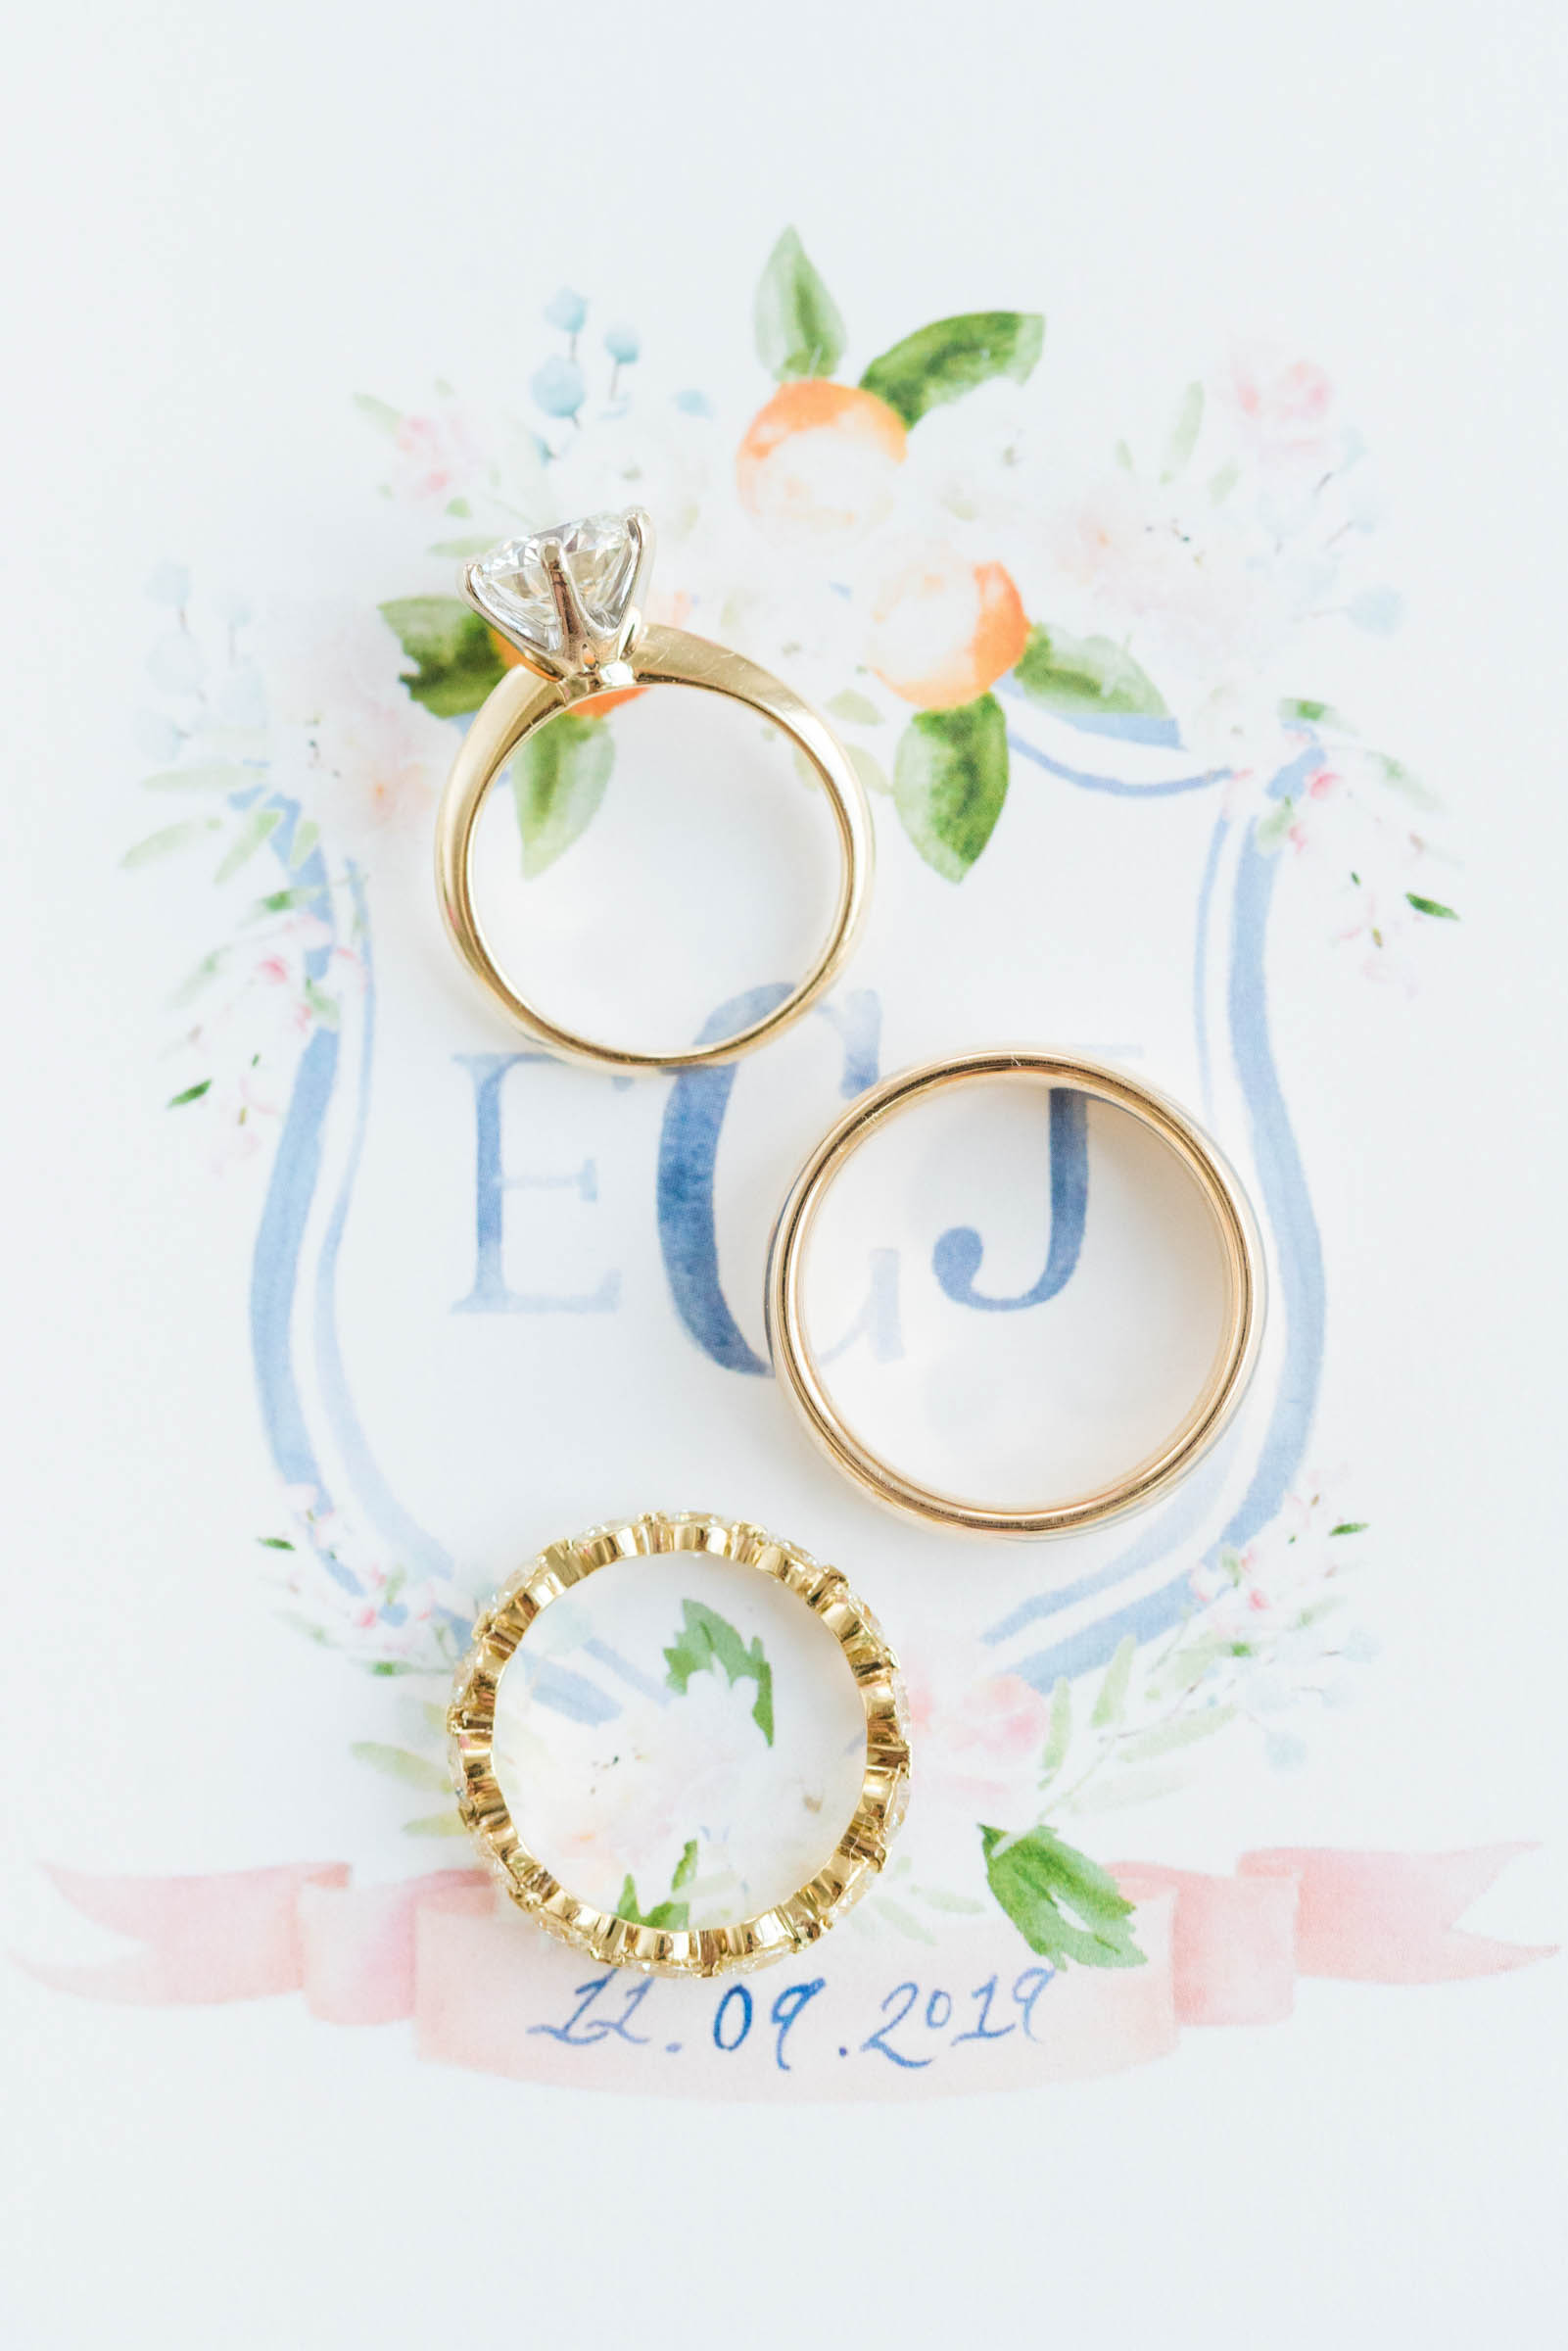 flatlay detail of rings on stationery - photo by Dana Cubbage Weddings